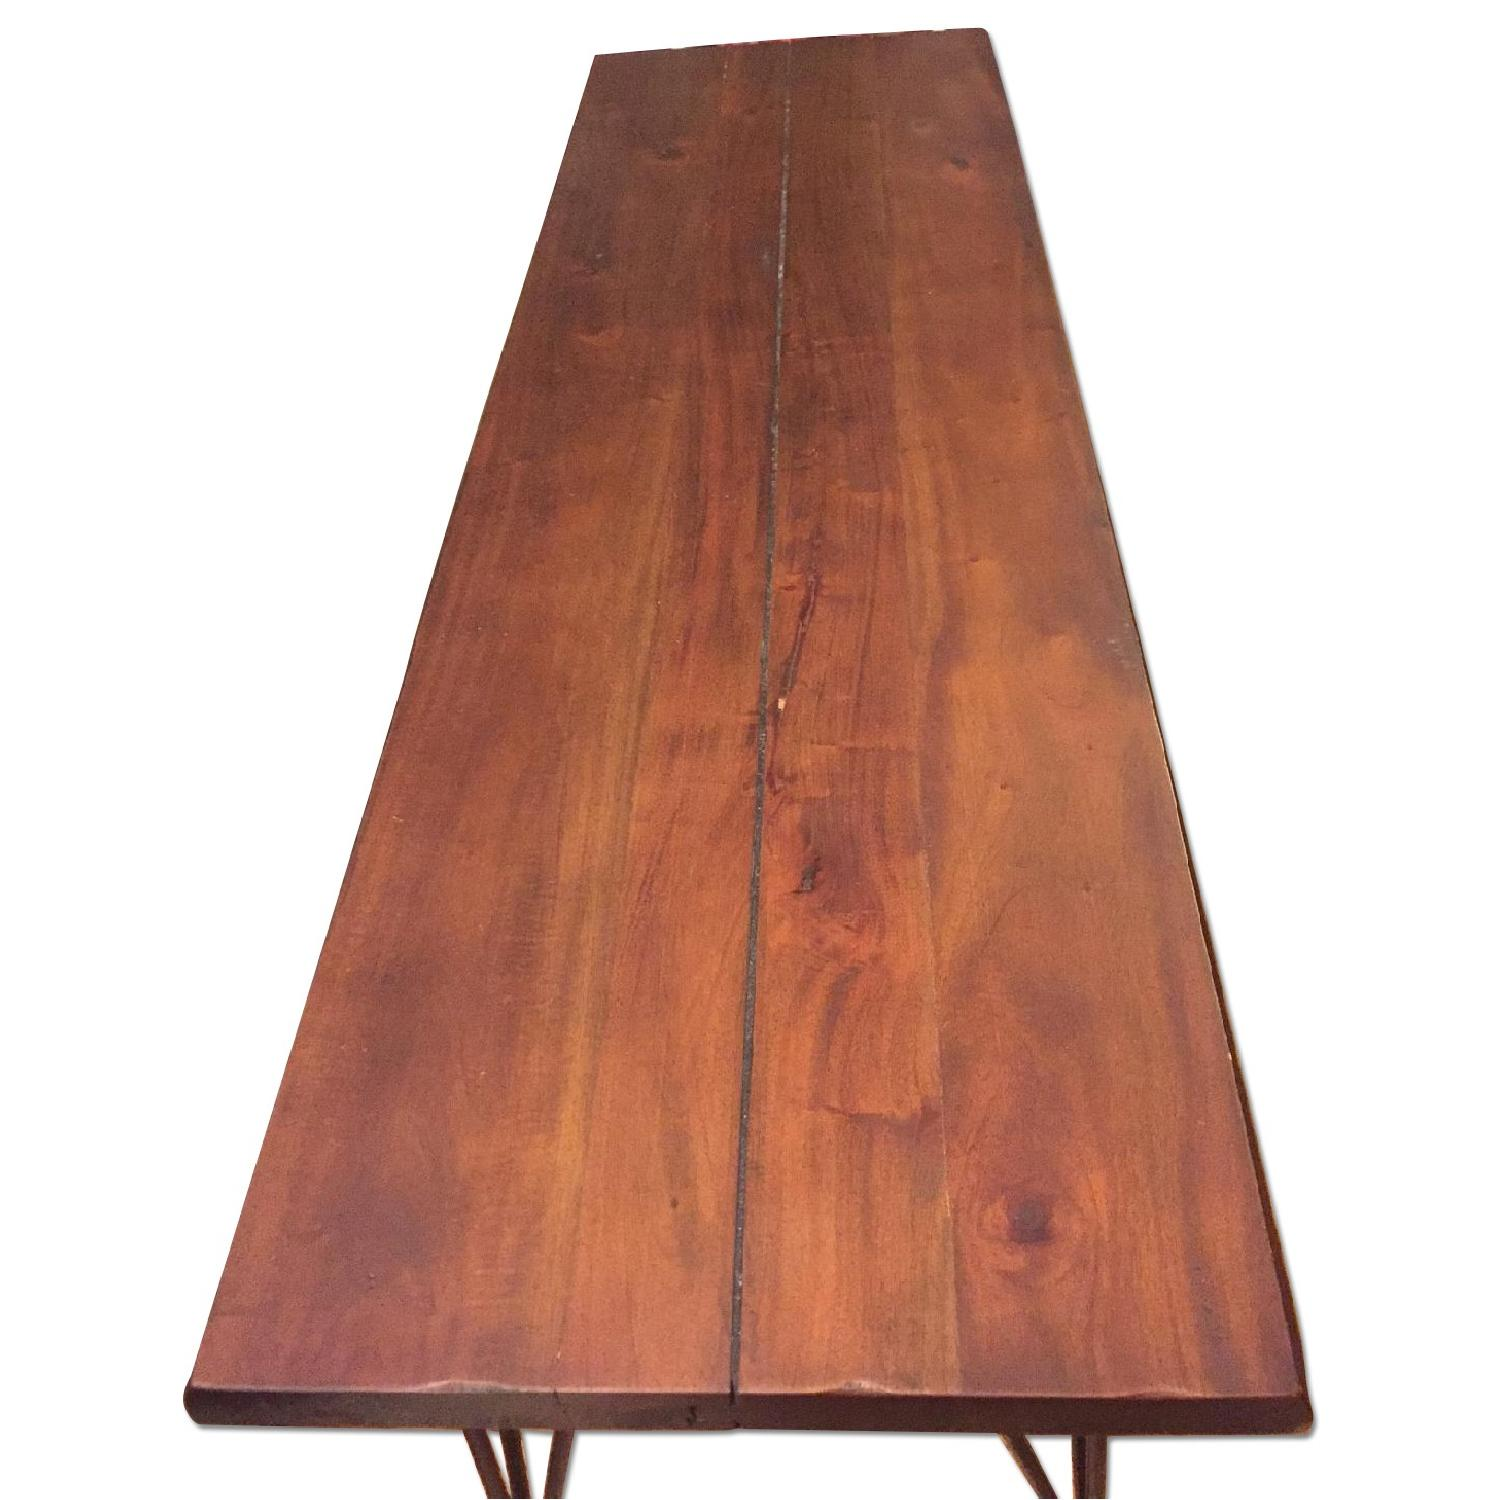 Natural Wood Table/Bench w/ Hairpin Legs - image-0